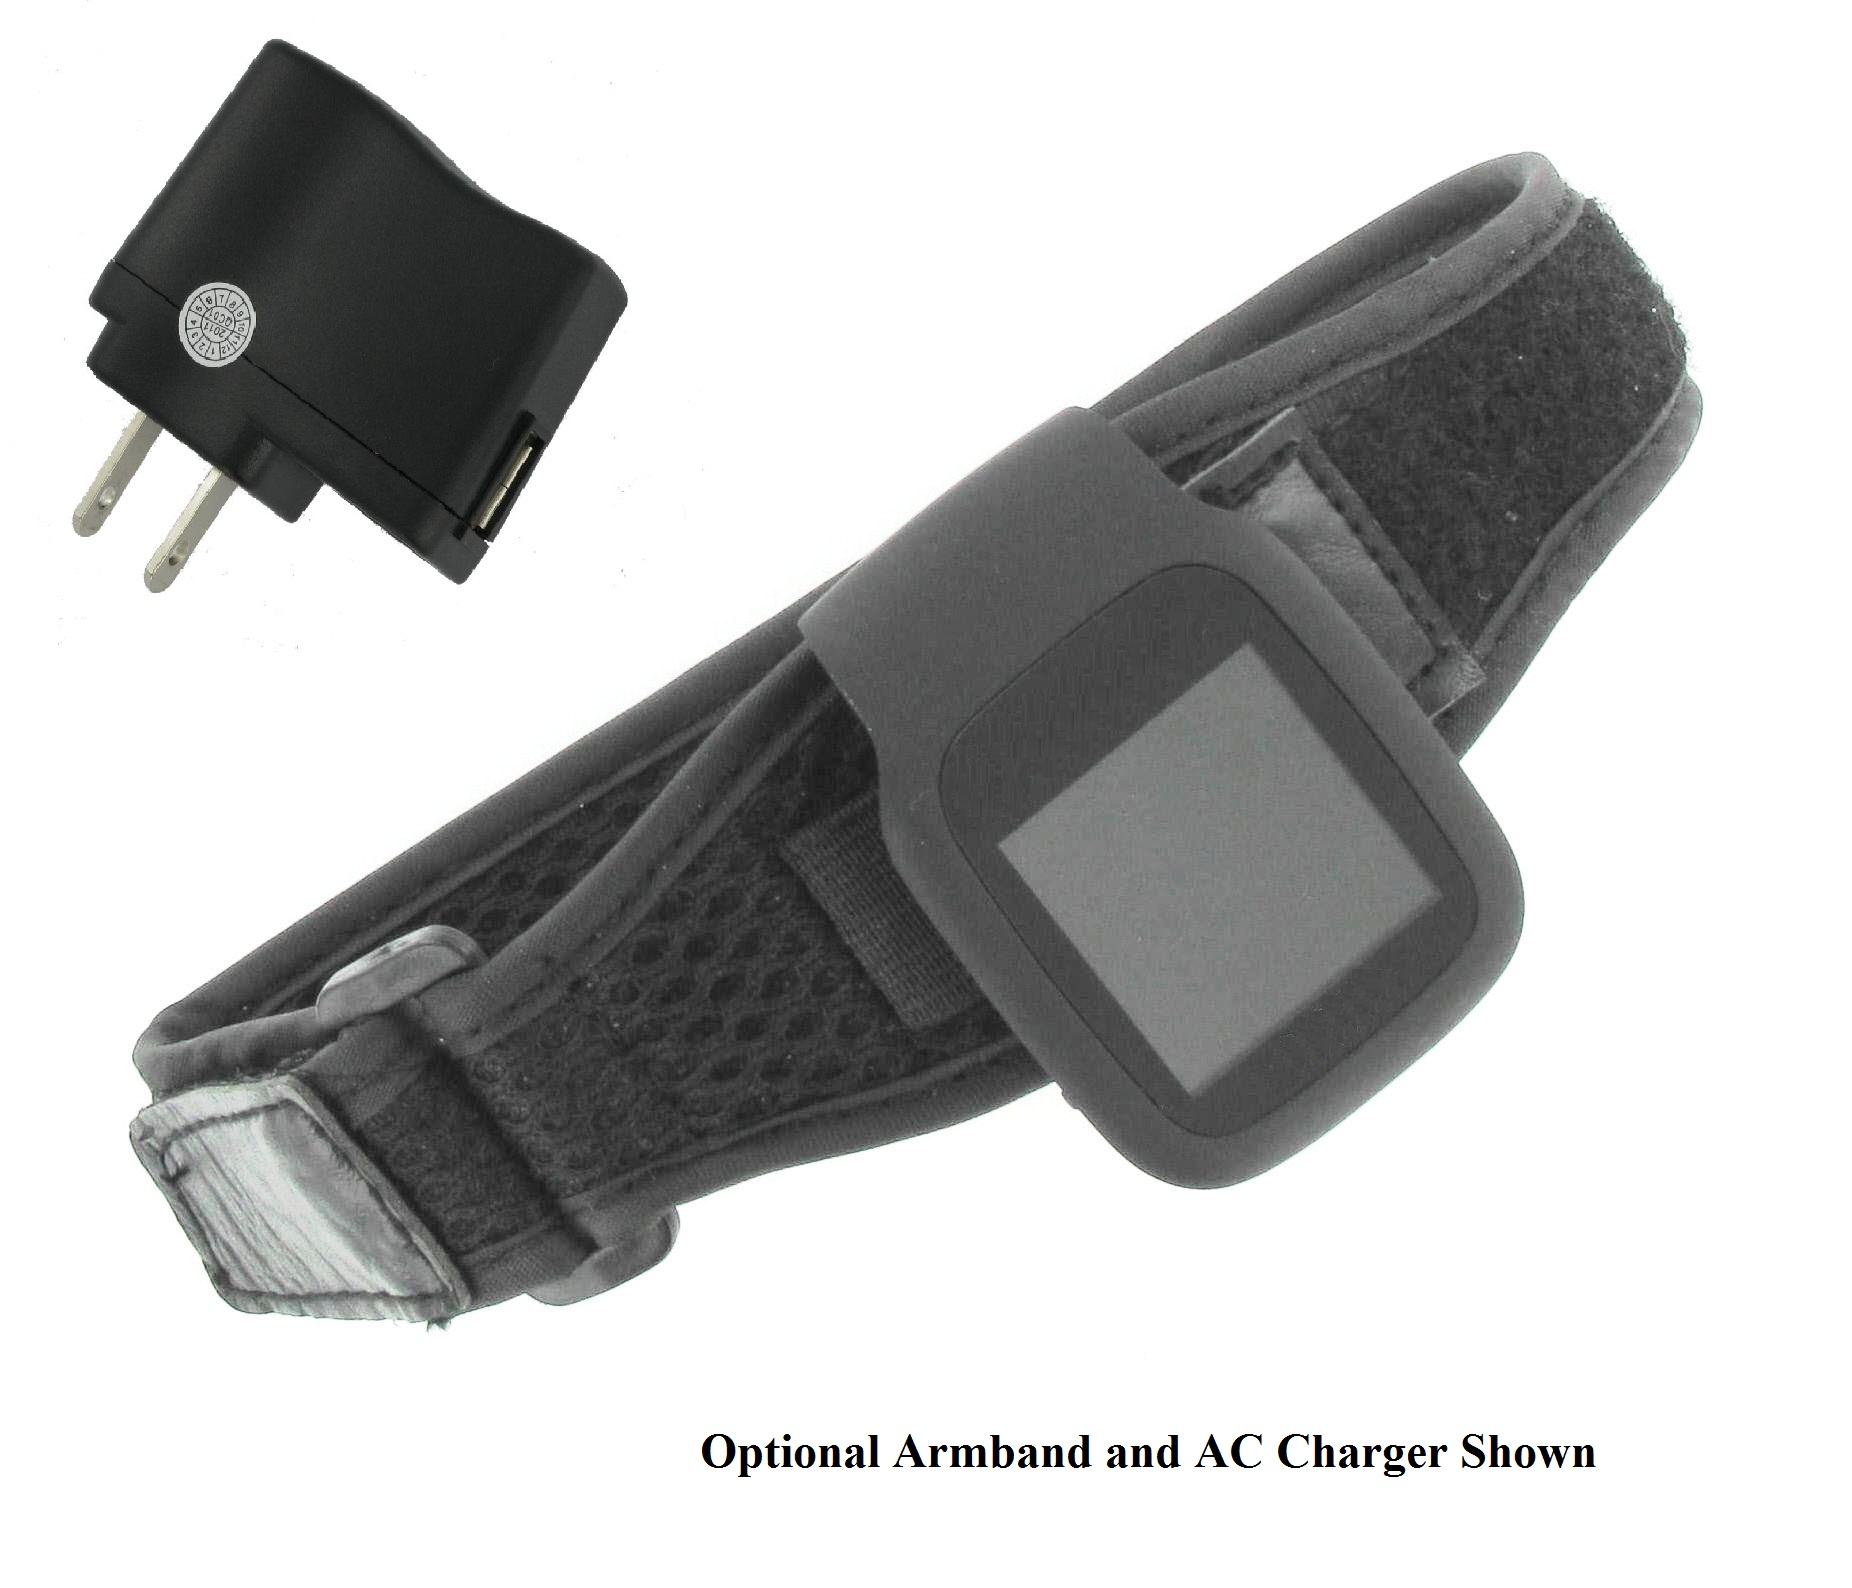 zclipon-sports-with-arm-band-charger-label.jpg